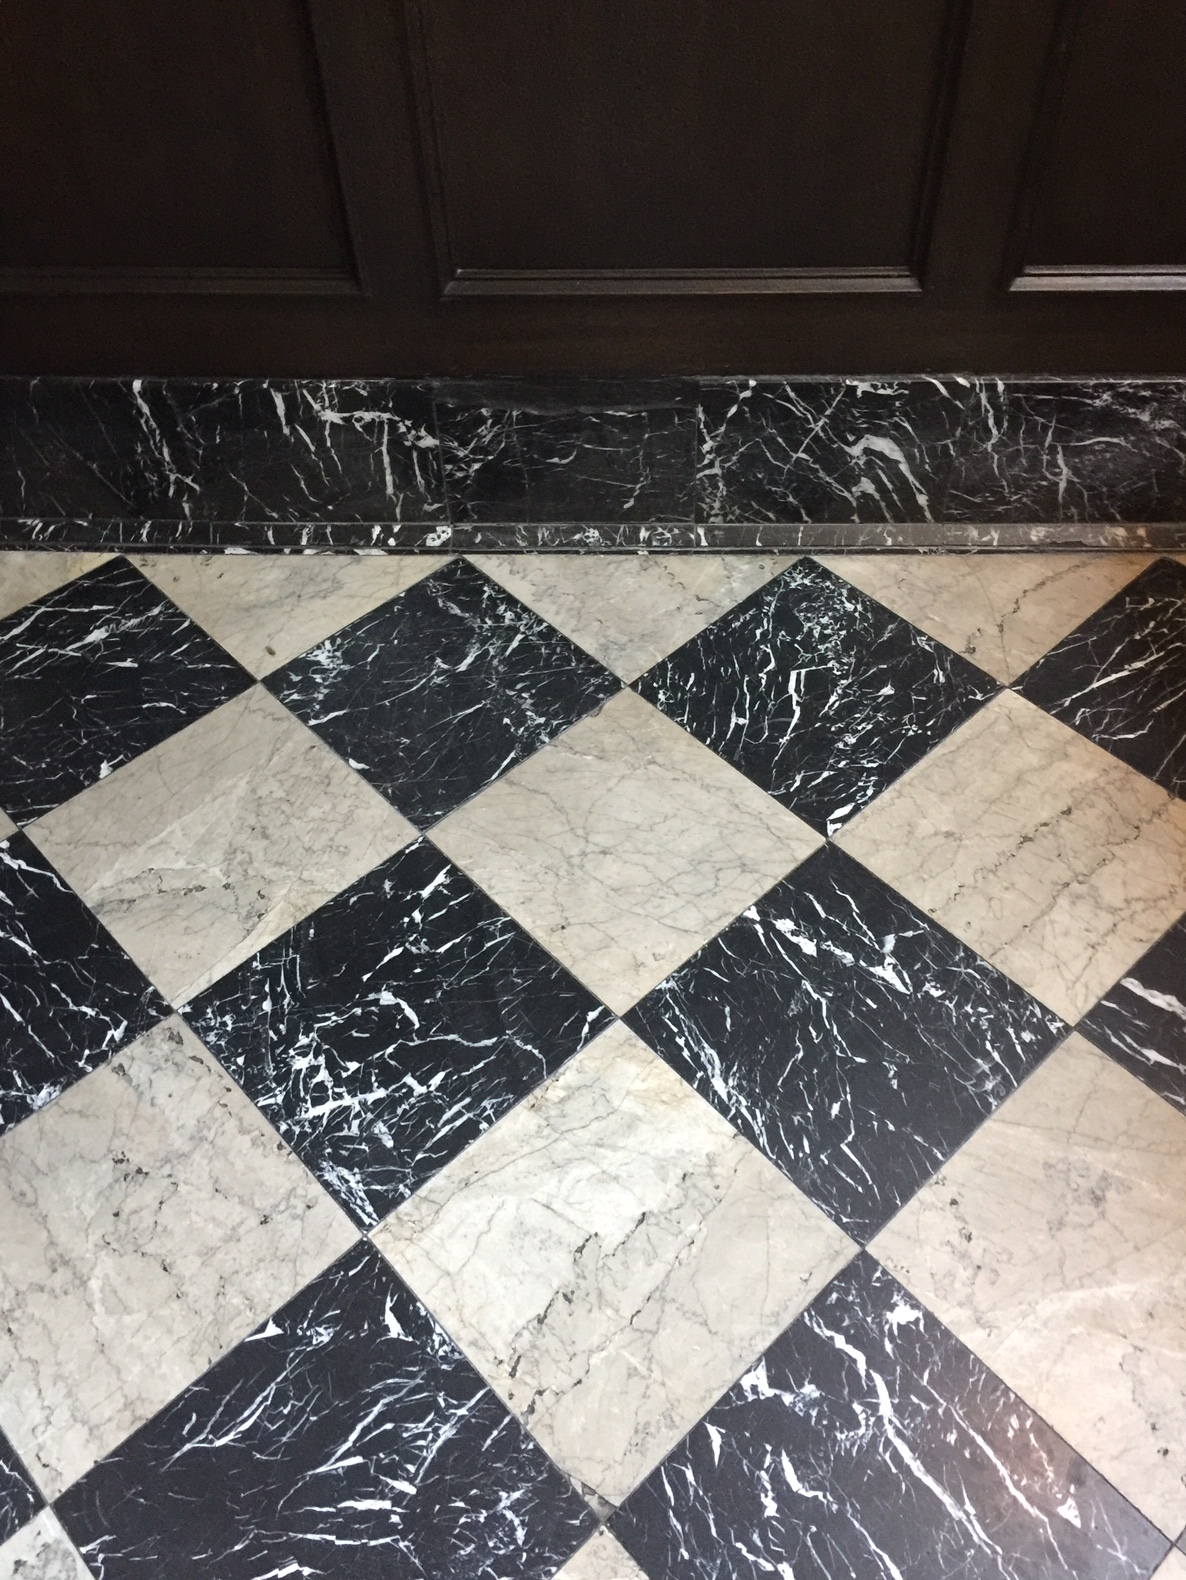 Marble checkerboard floors - The Culver Hotel, Los Angeles